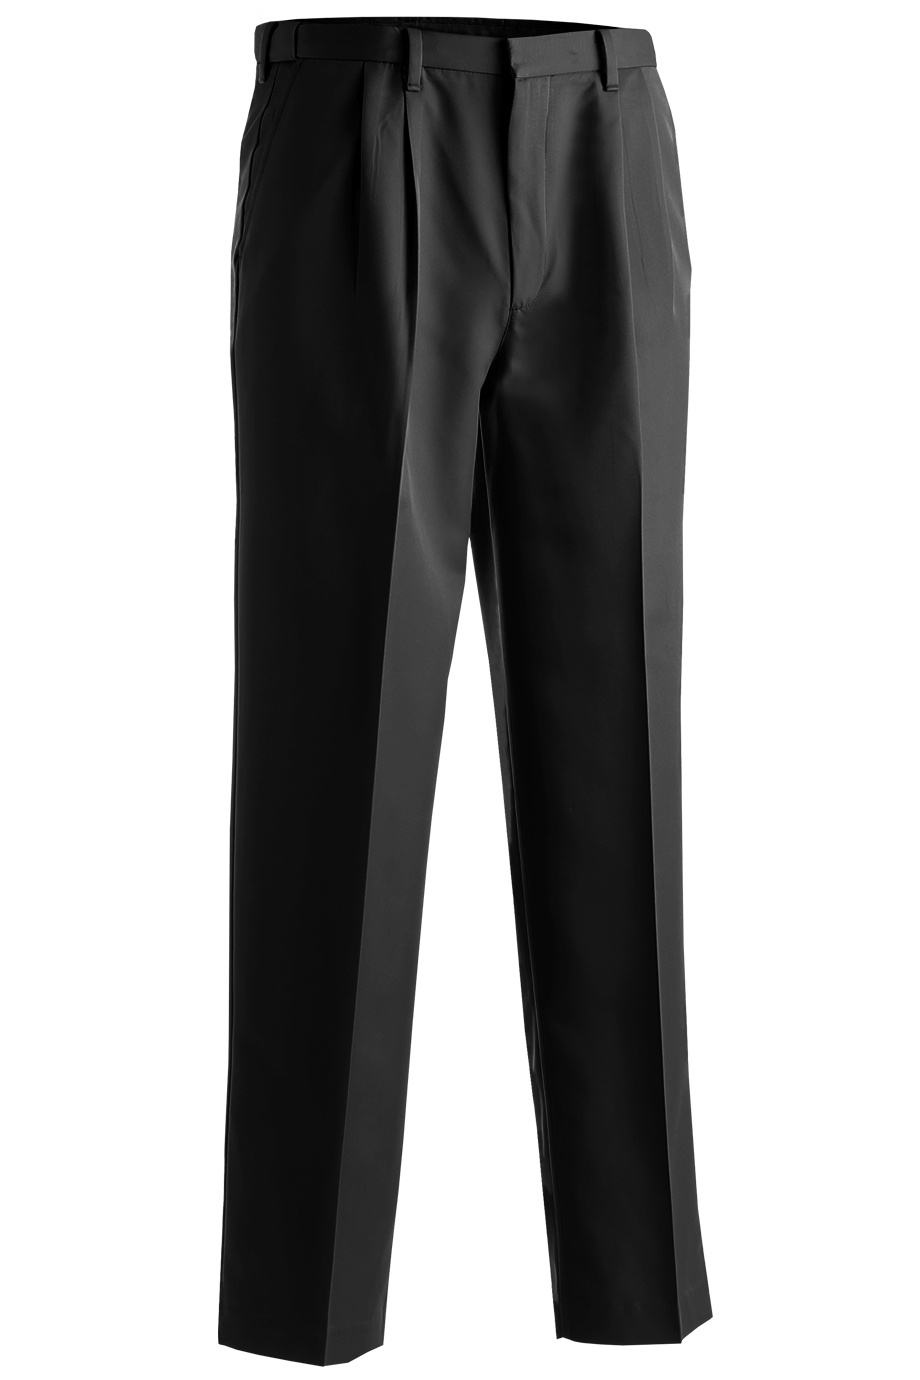 'Edwards 2674 Men's Microfiber Pleated Pant'